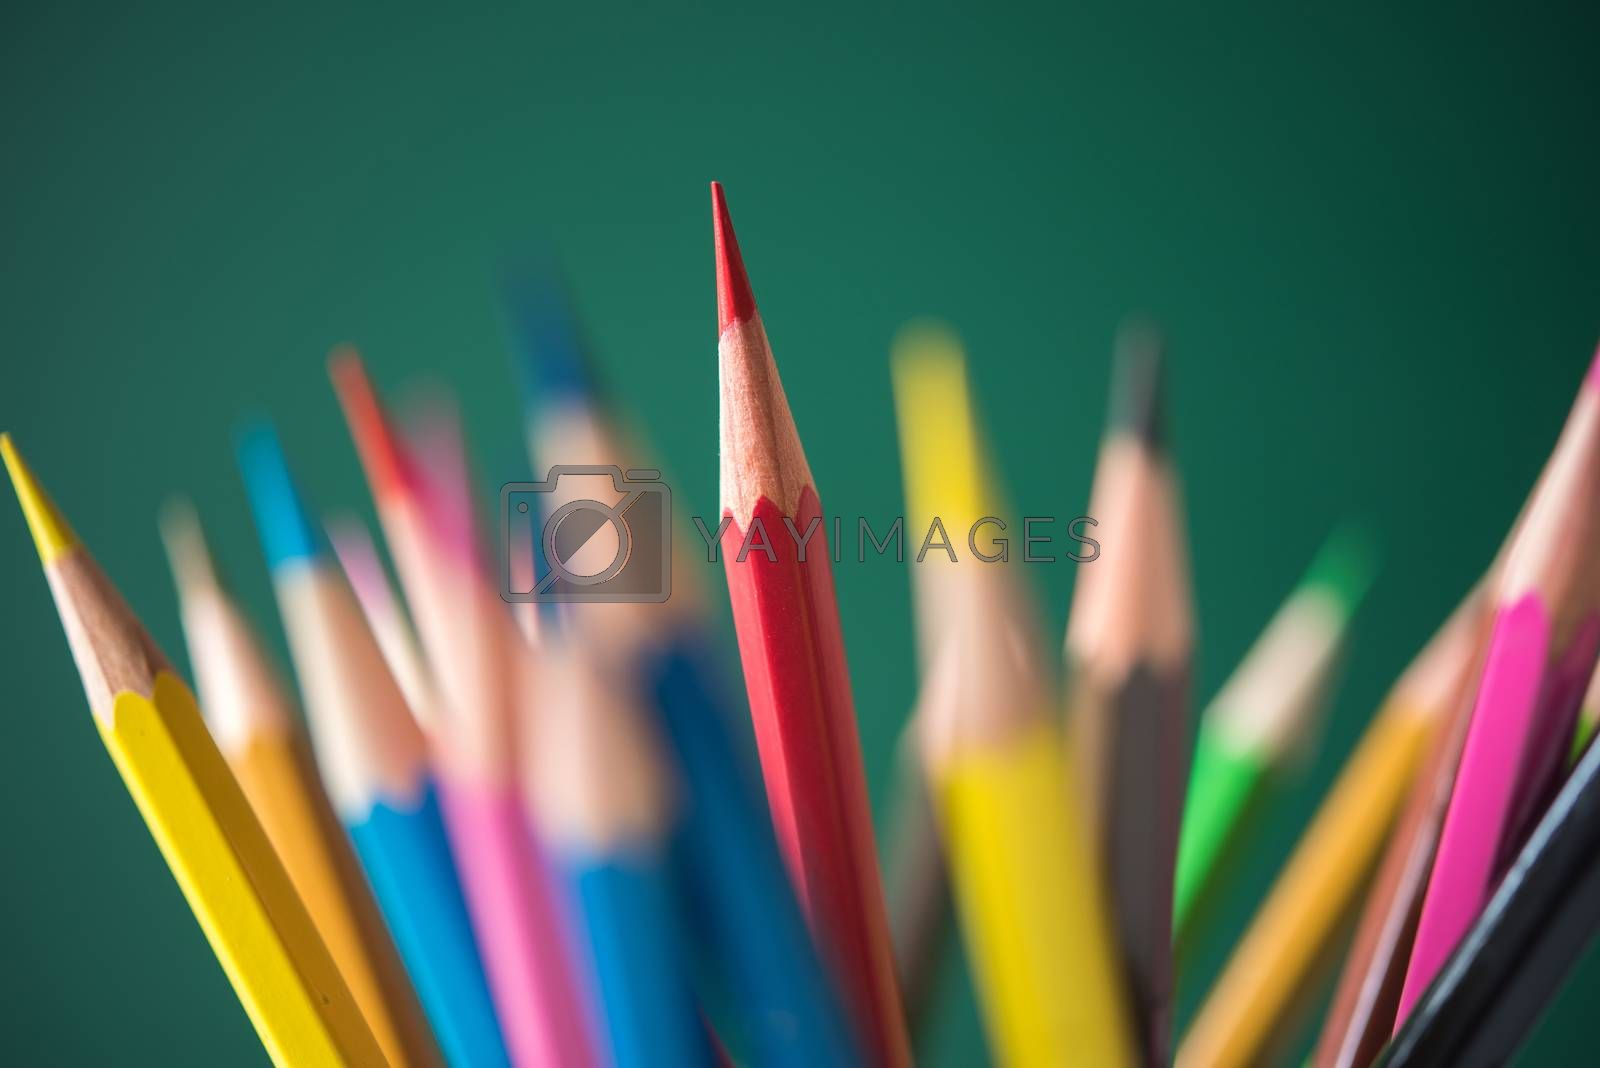 multicolor pencil on green chalkboard background by Lerttanapunyaporn